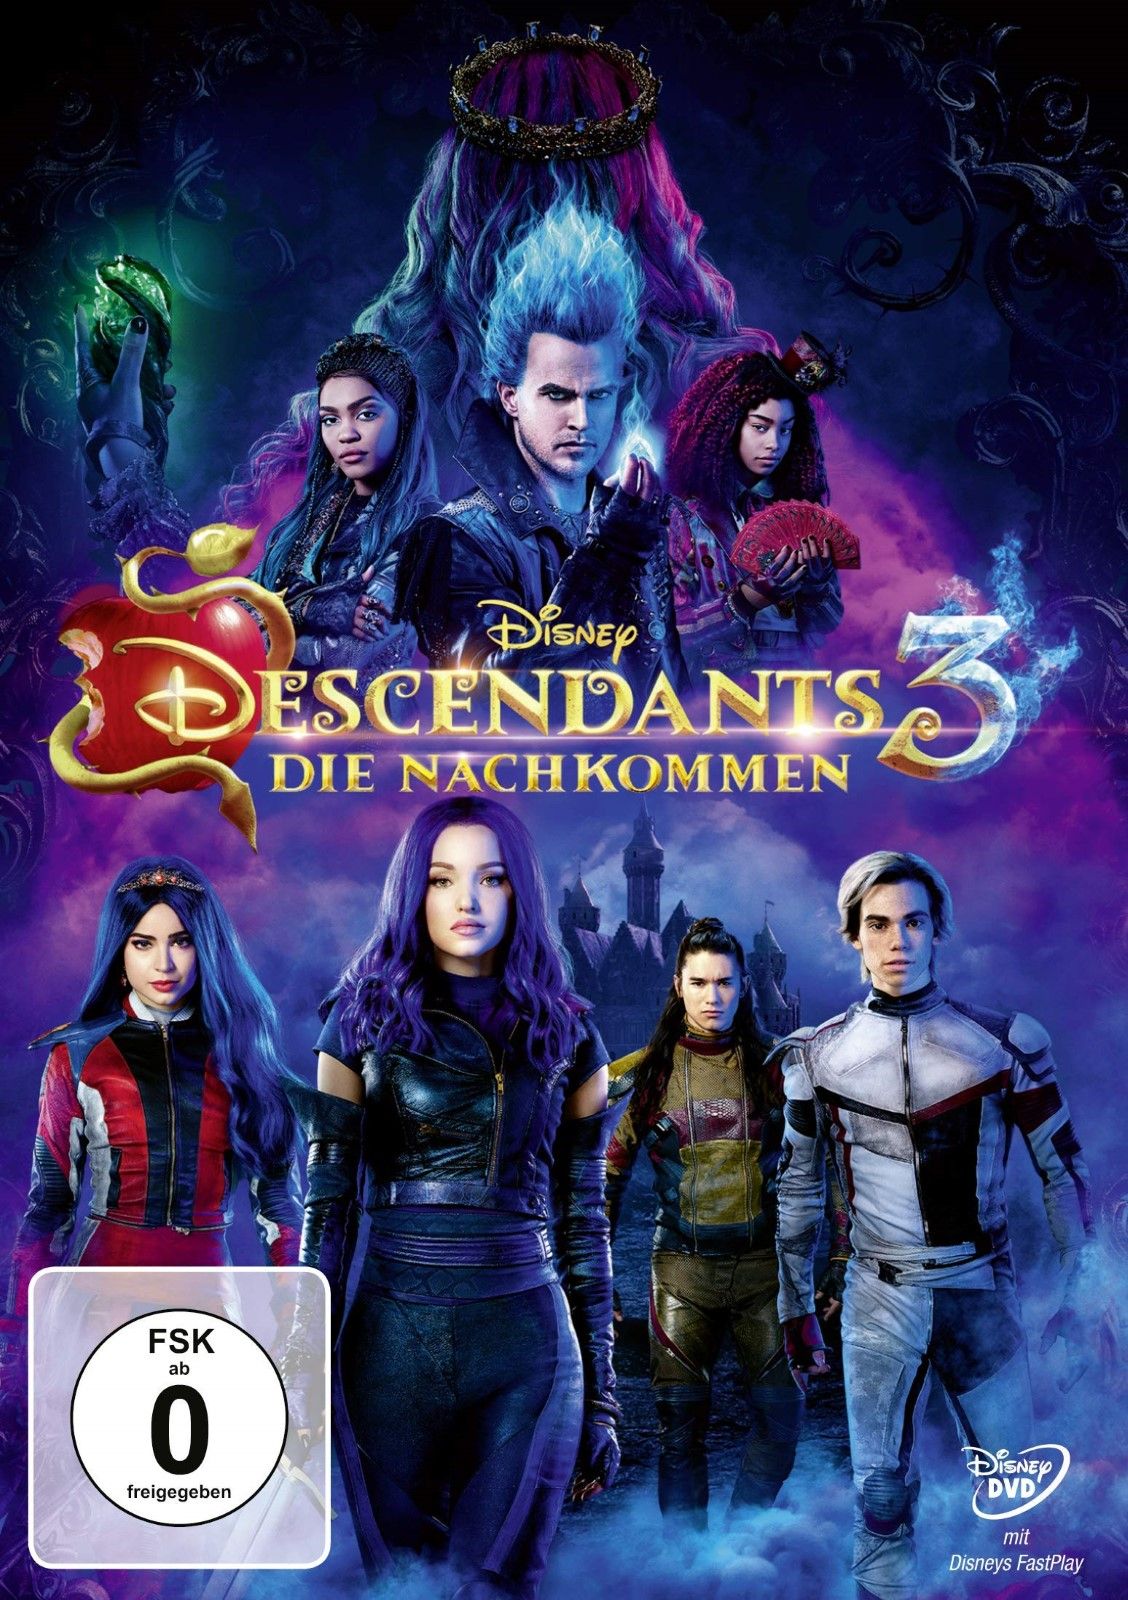 Descendentes 3 Filme 2019 Adorocinema